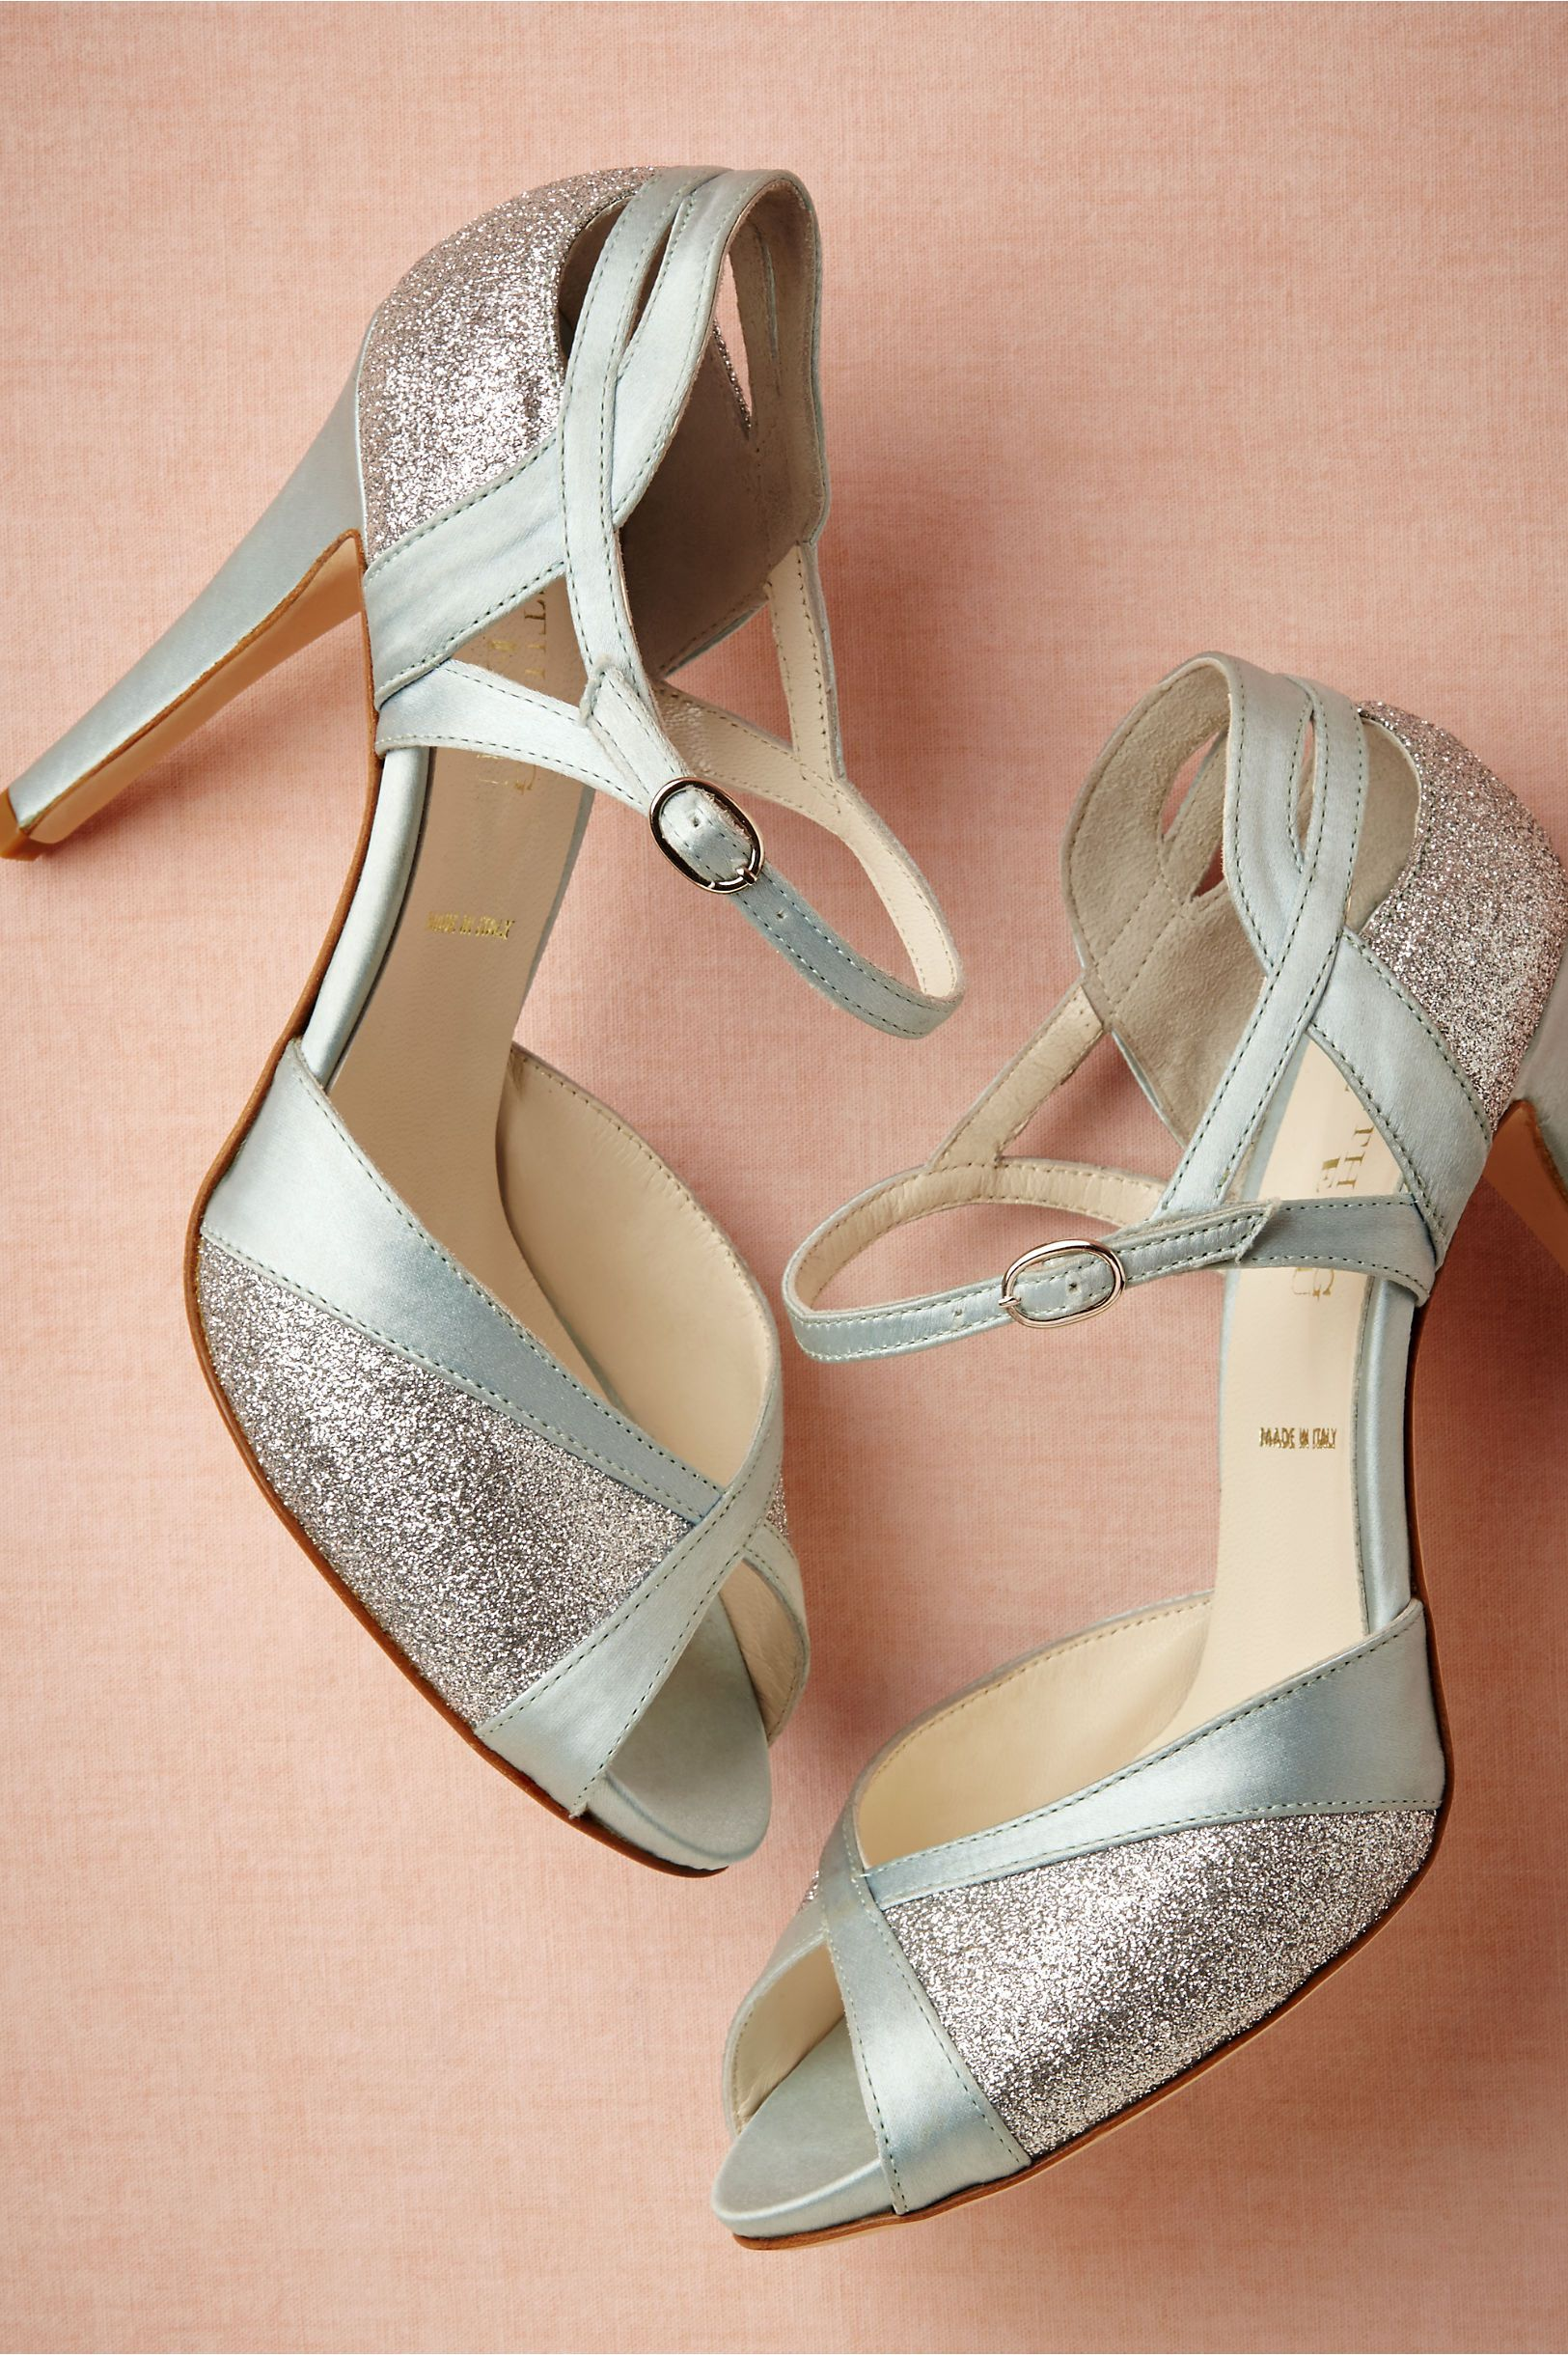 Cassiopeia Heels From BHLDN Love These Perfect For Weddings New Years And Gatsby Vintage Wedding